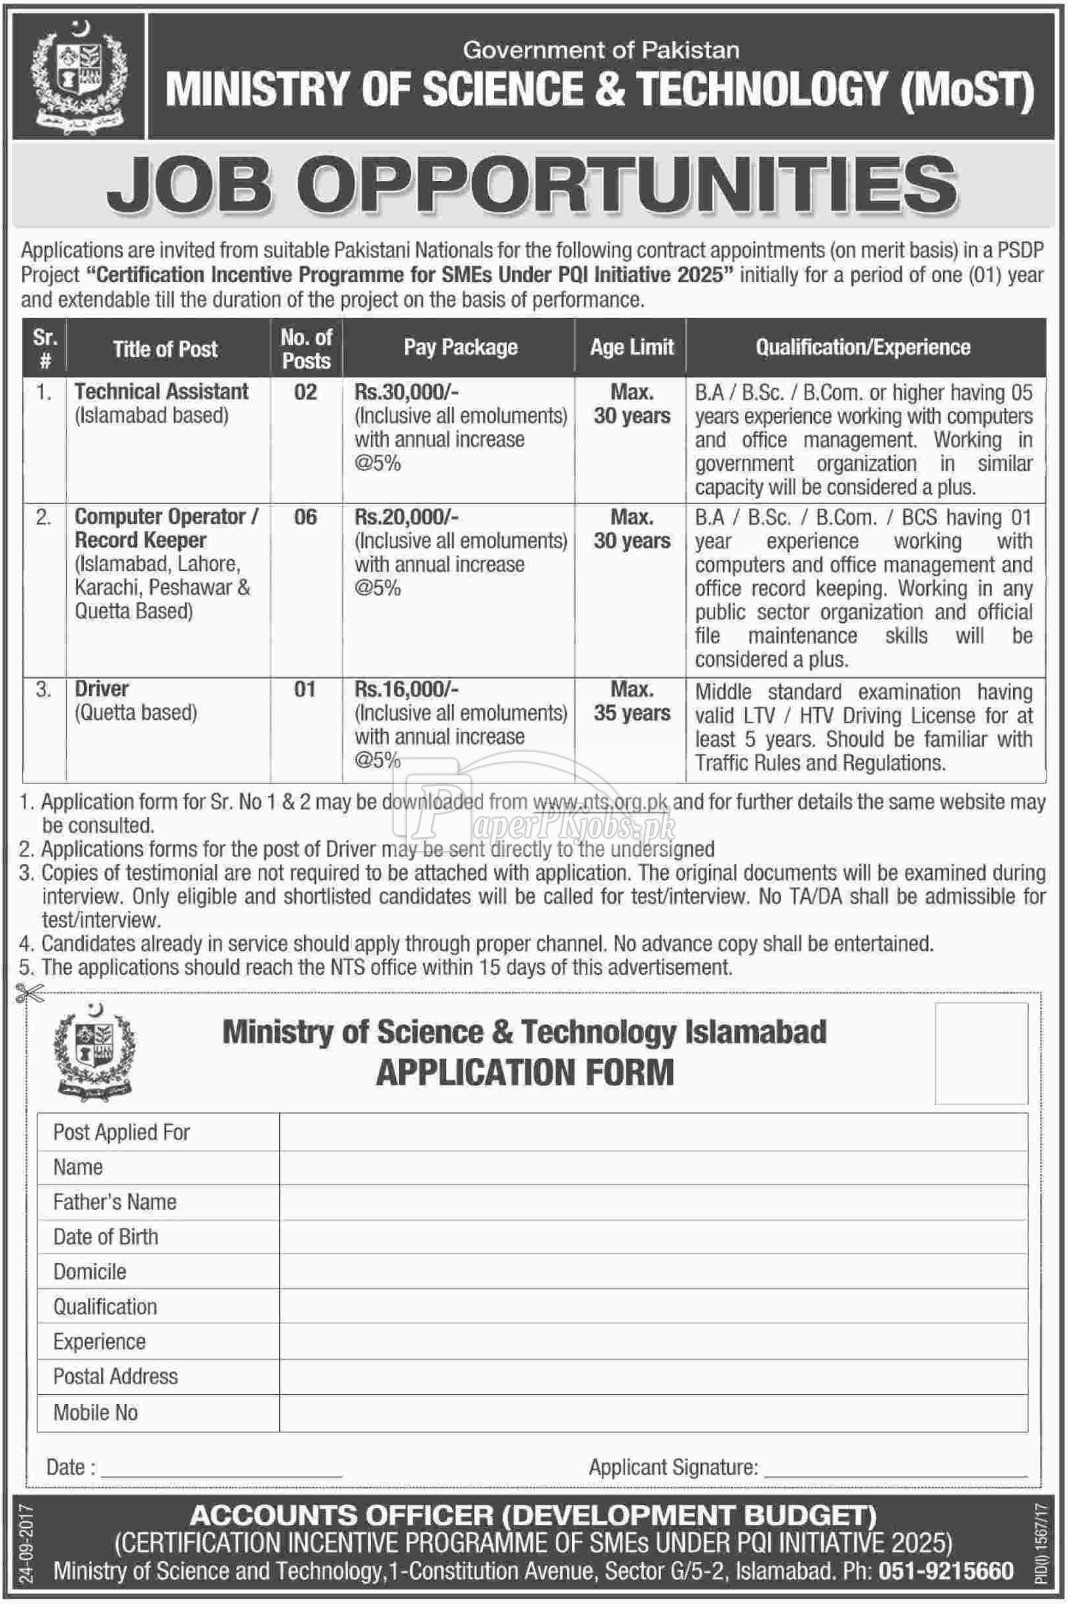 Ministry of Science & Technology Islamabad Jobs 2017